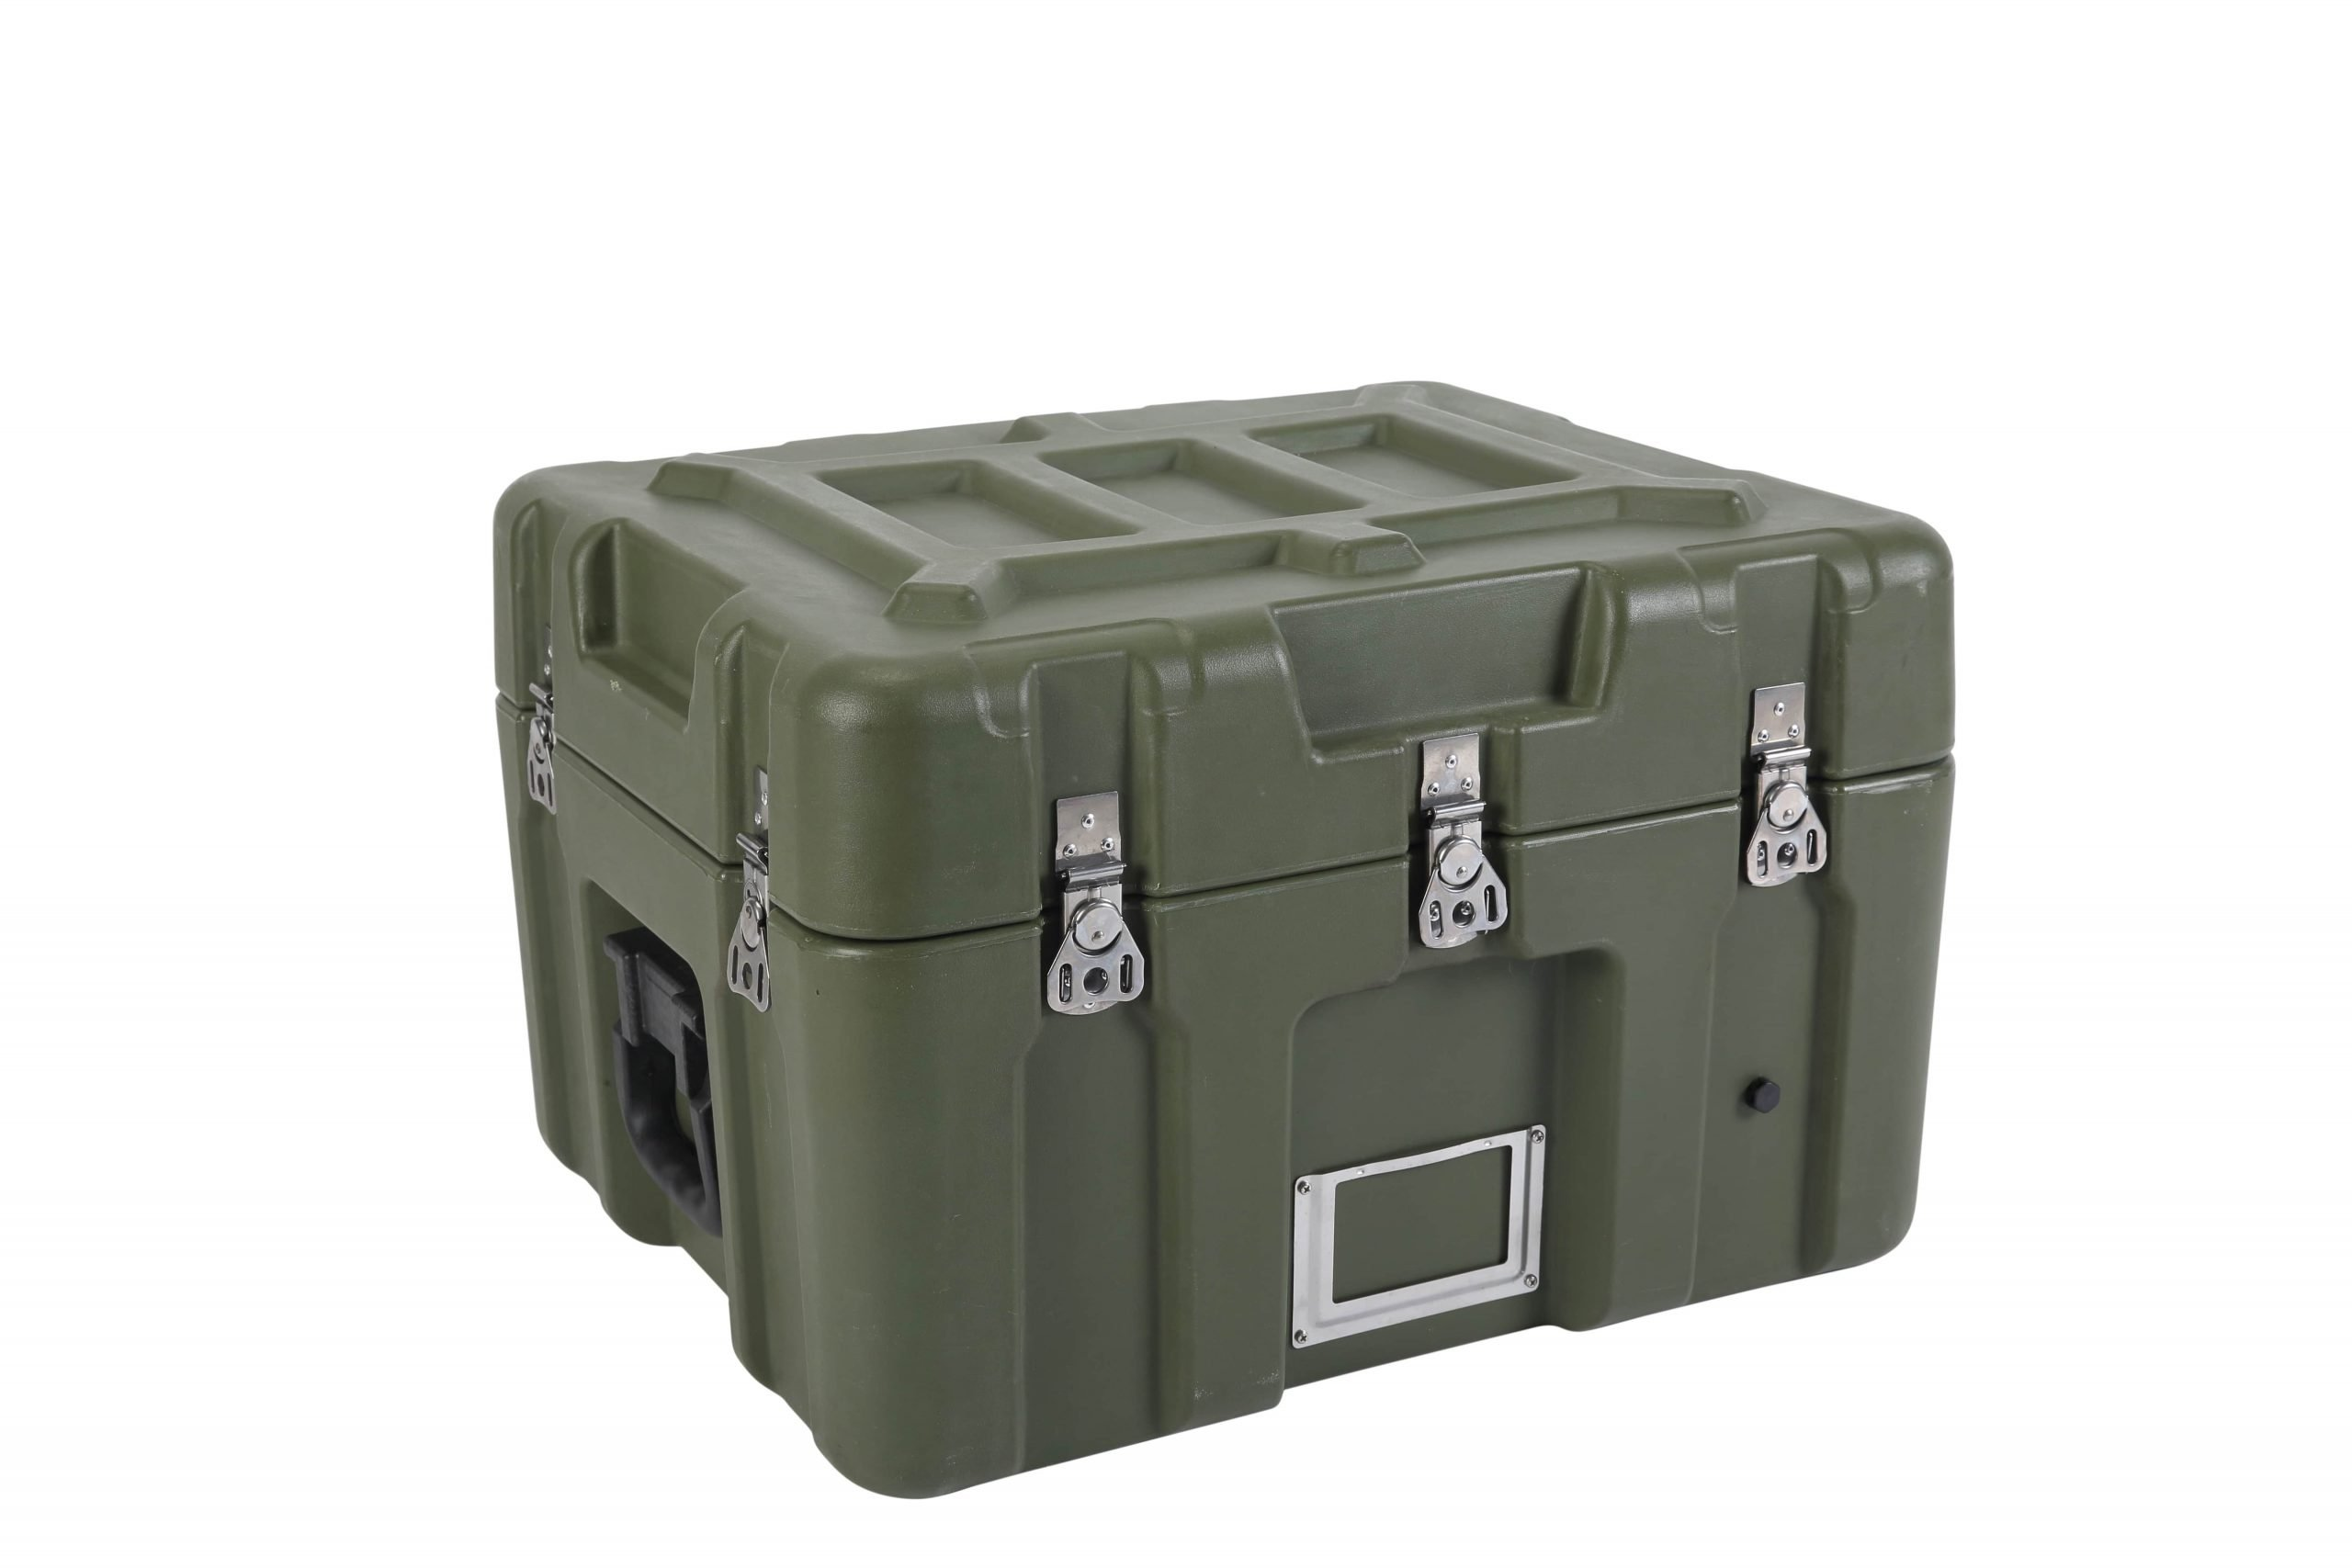 DCB Cases roto molded cases